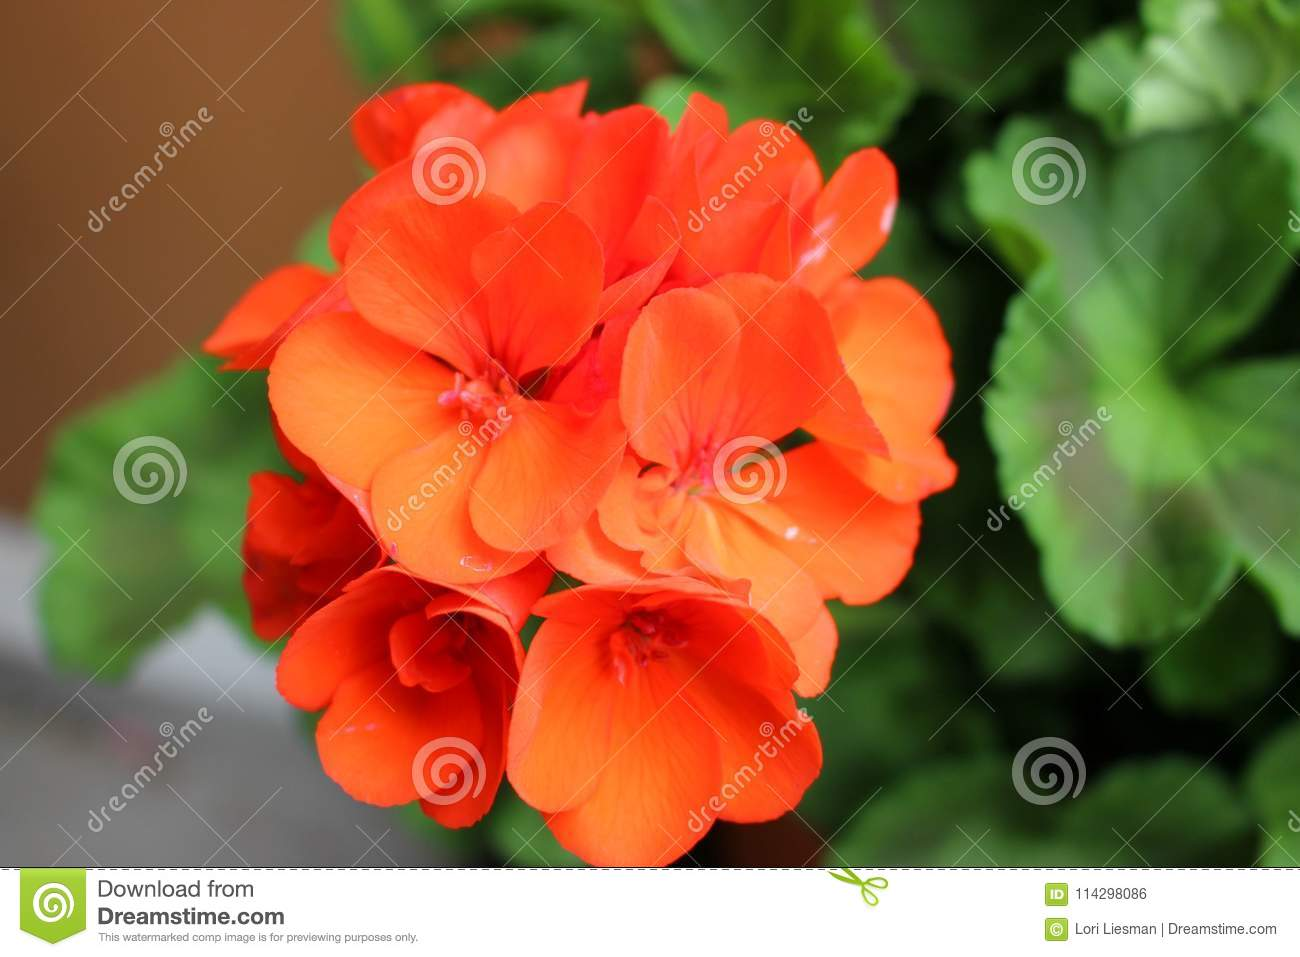 Lovely Small Orange Flowers Growing In A Cluster Stock Photo Image